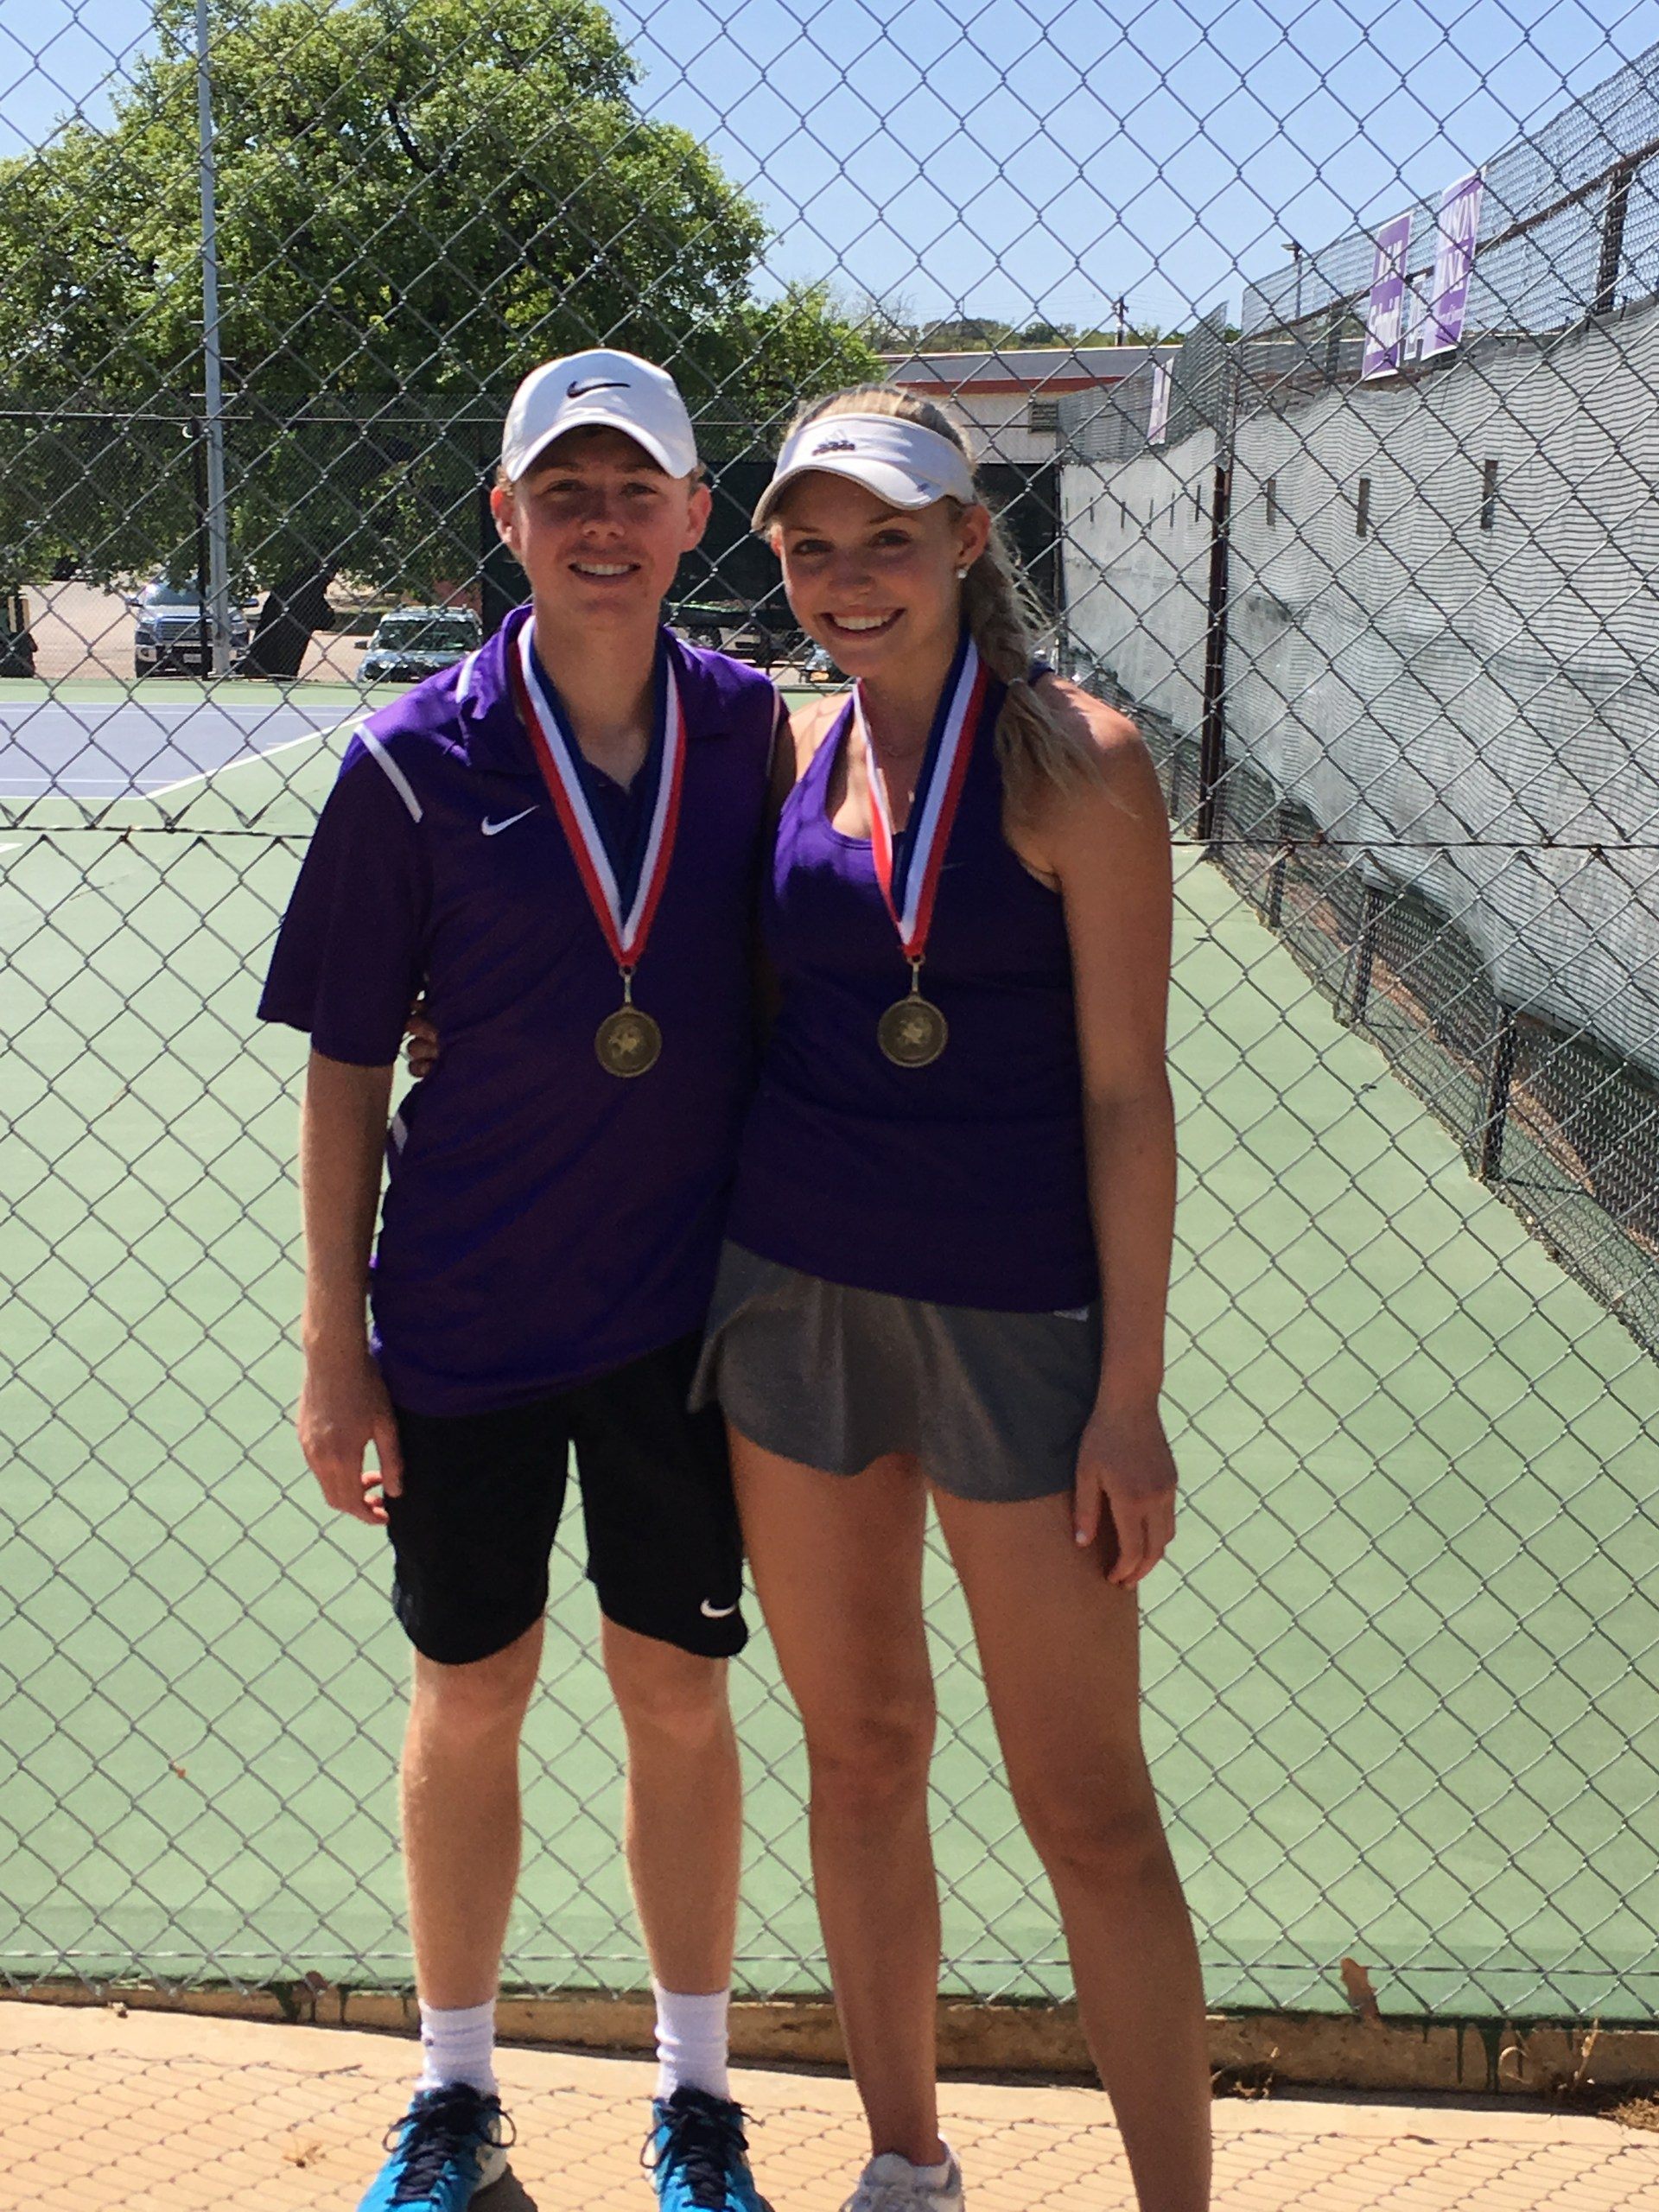 Cason Dudney & Ryli Ruffin - Varsity Mixed Doubles Champs